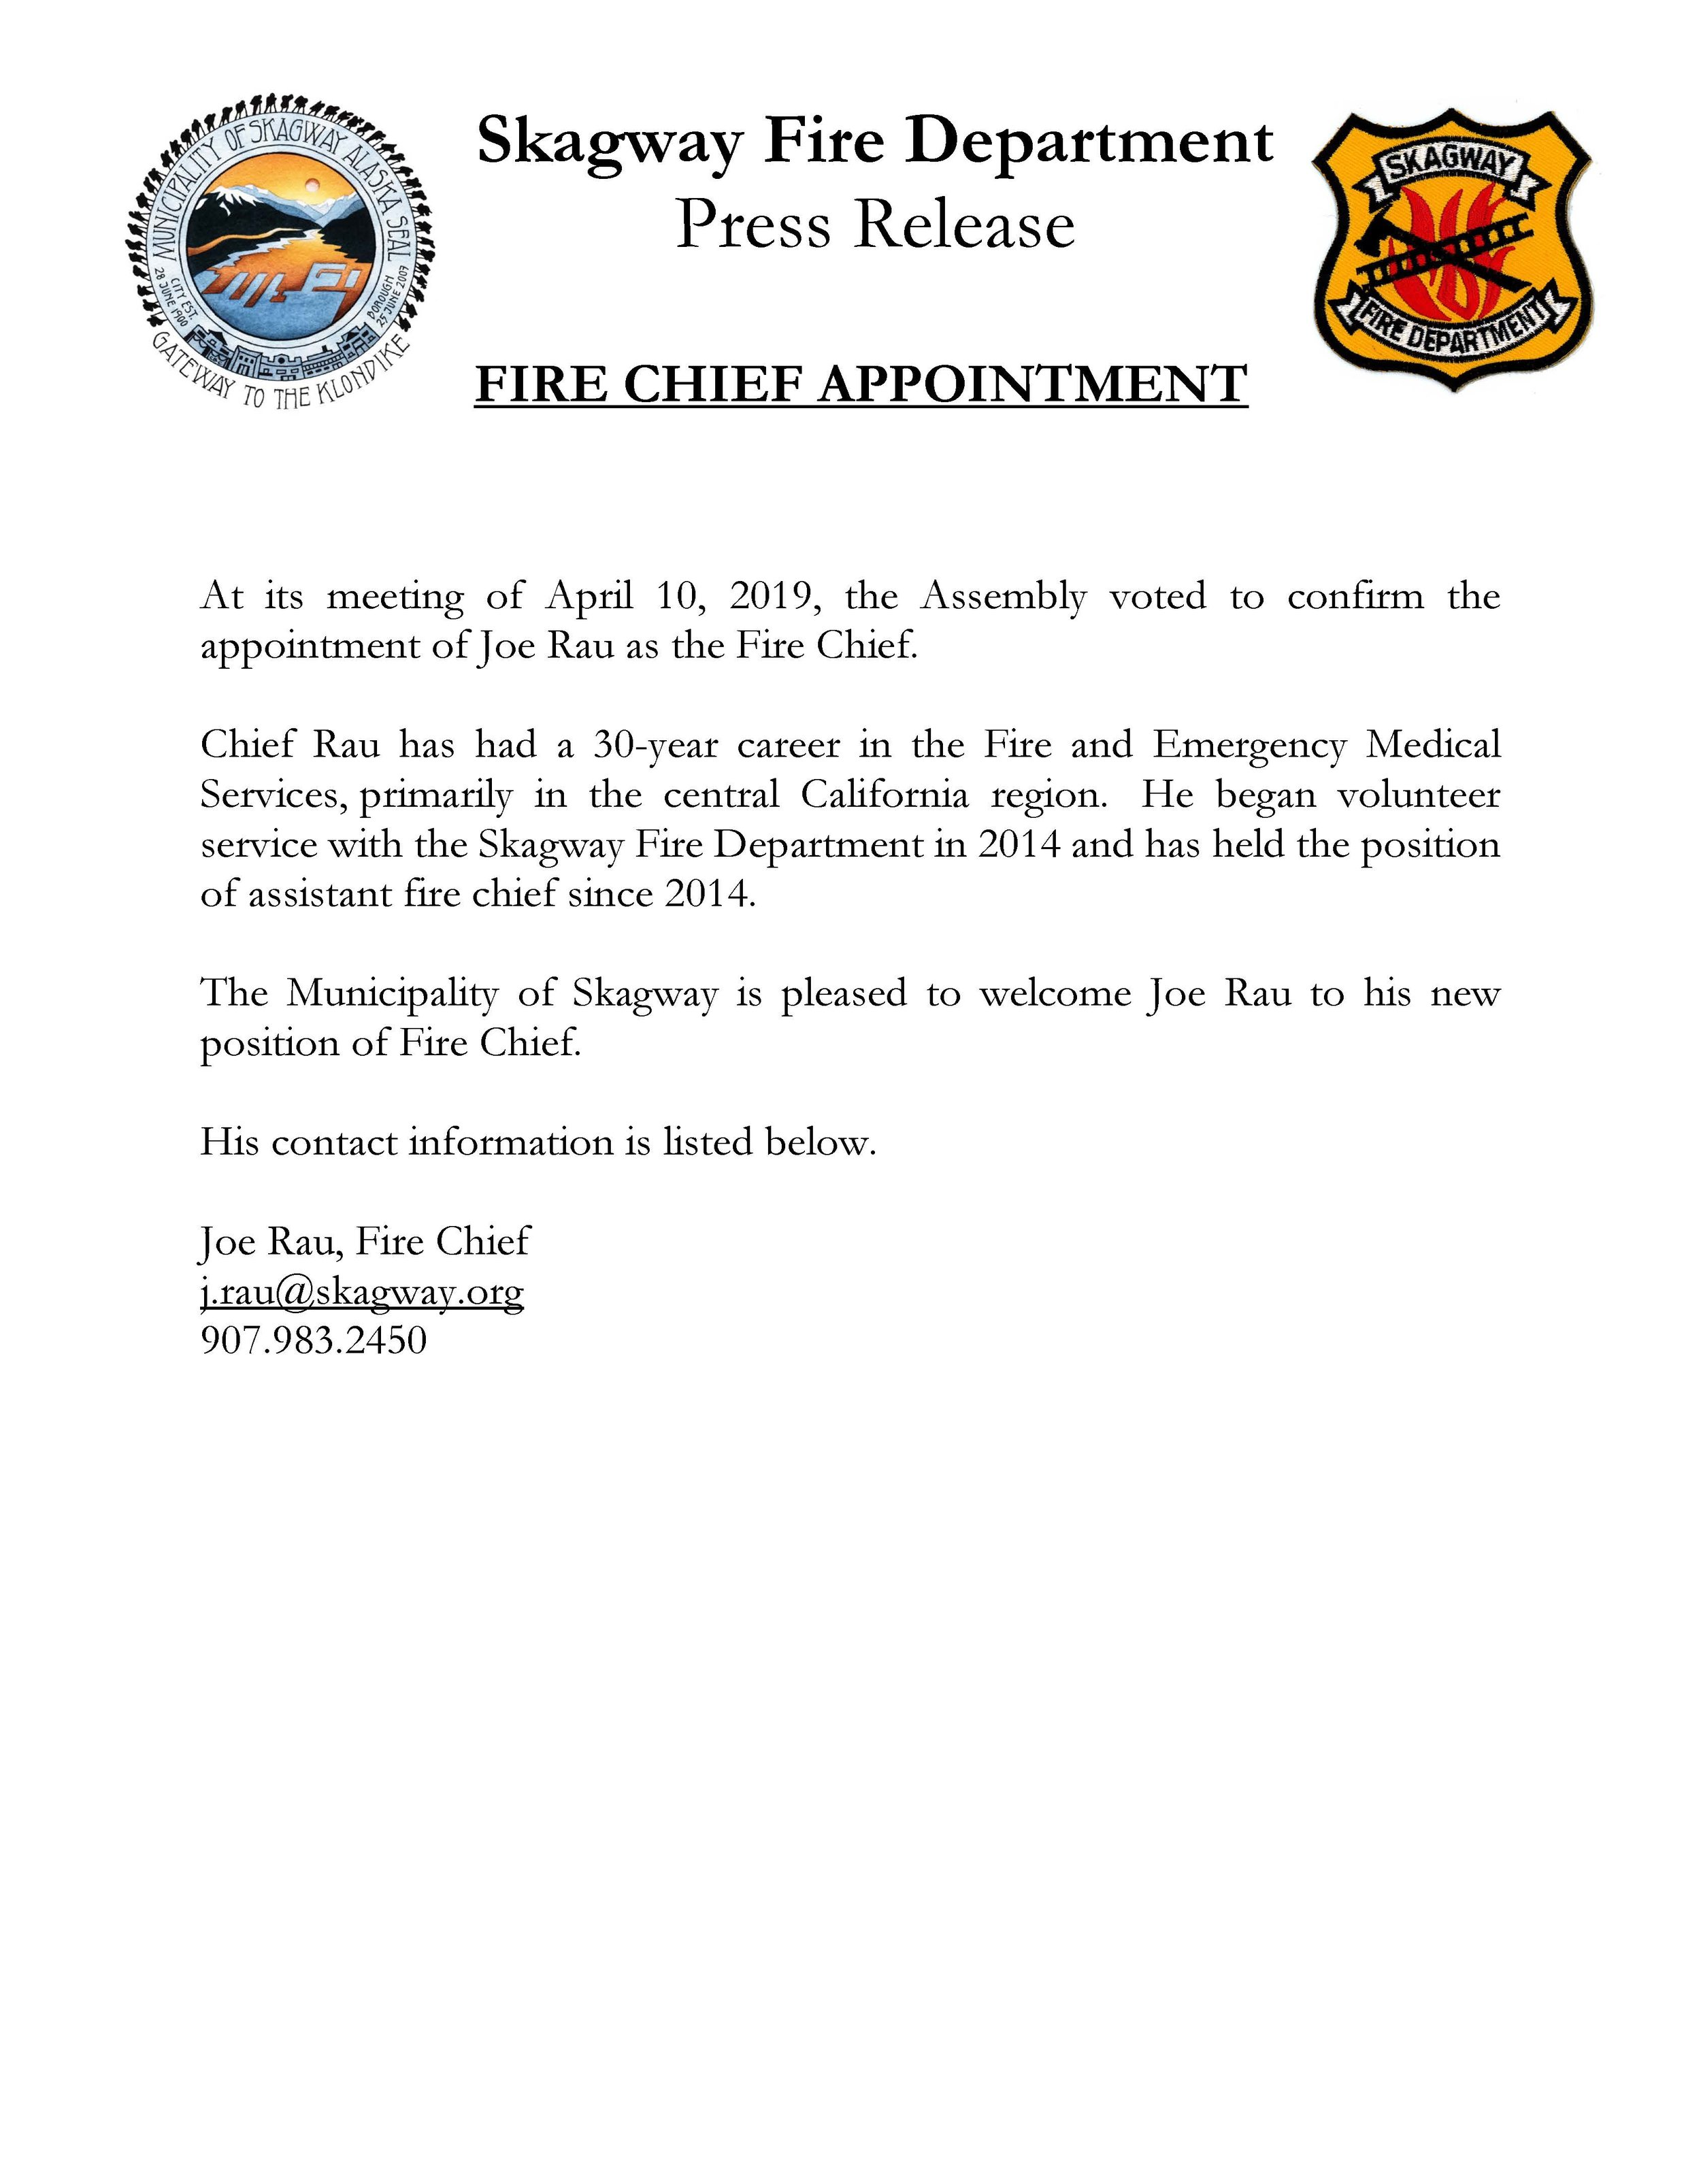 Chief Rau Press Release.jpg